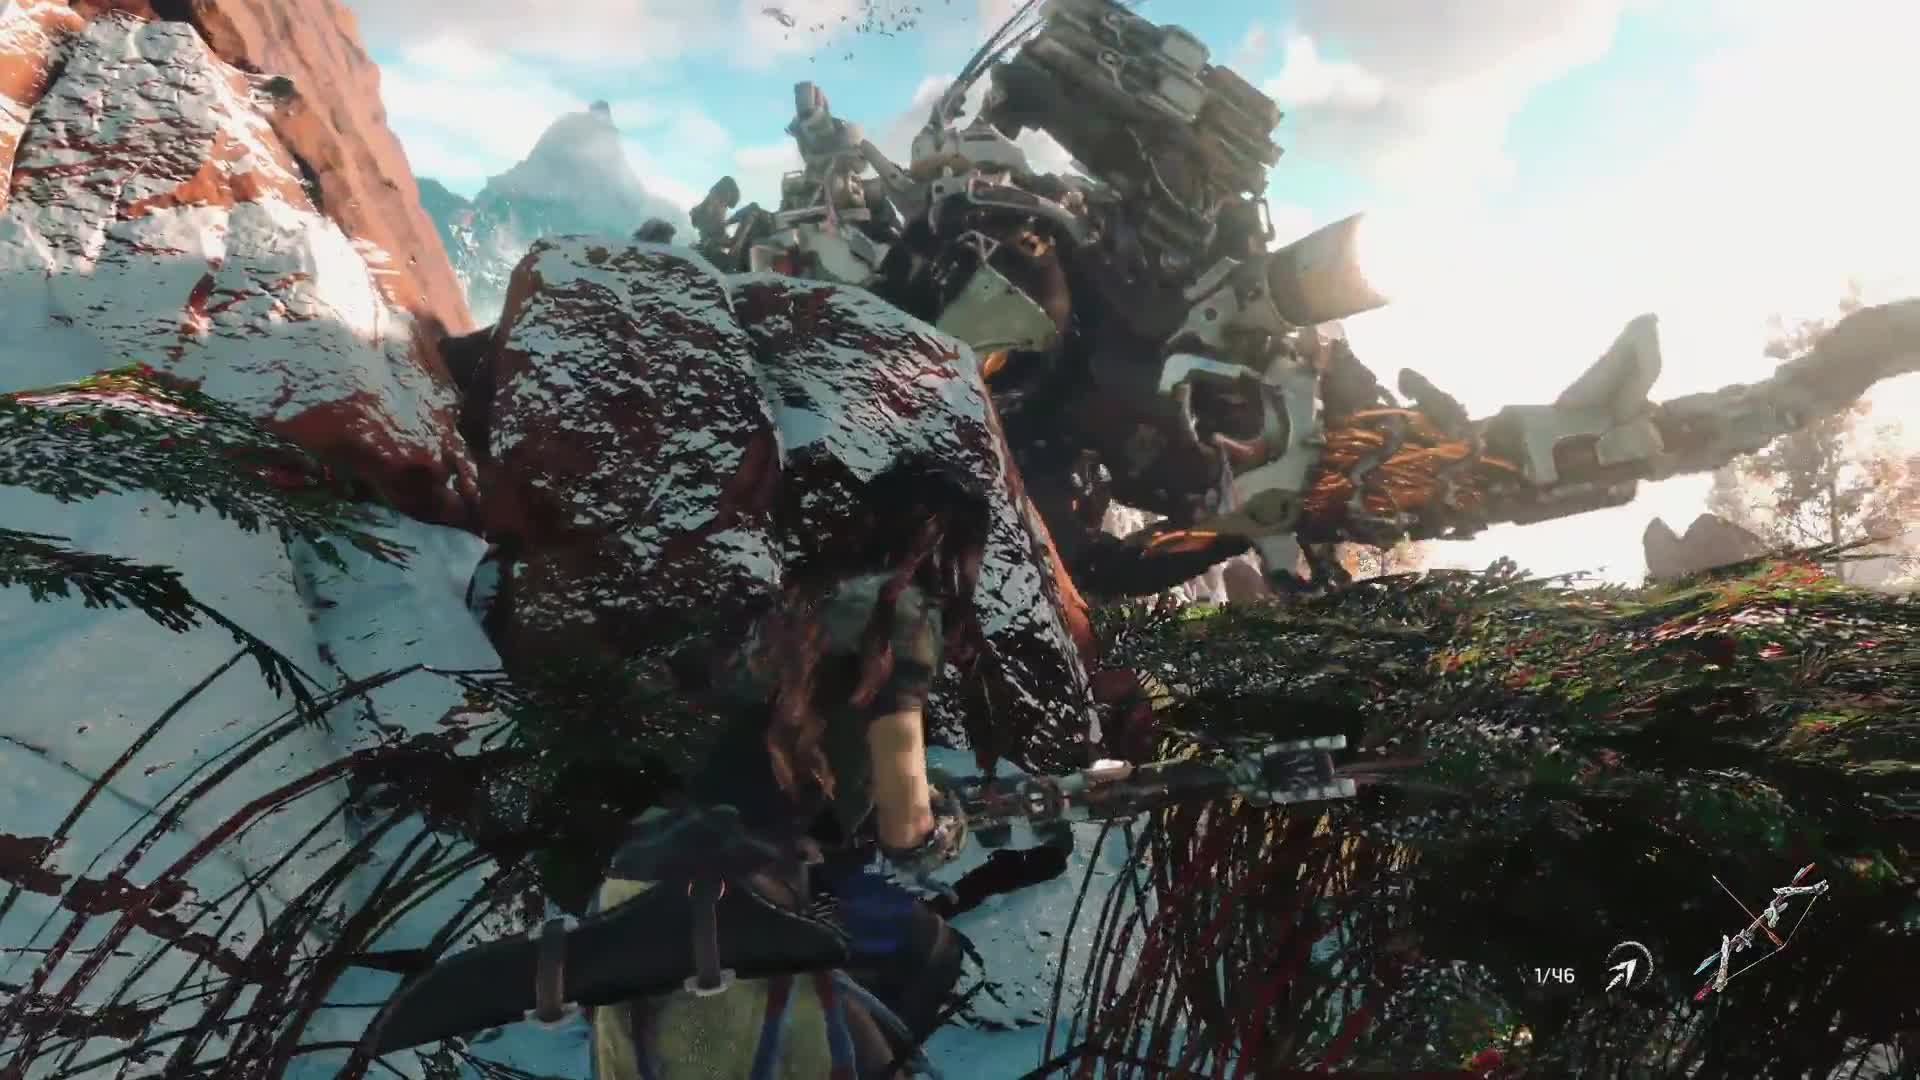 Watch a post-apocalyptic cavewoman hunt robot dinosaurs in a